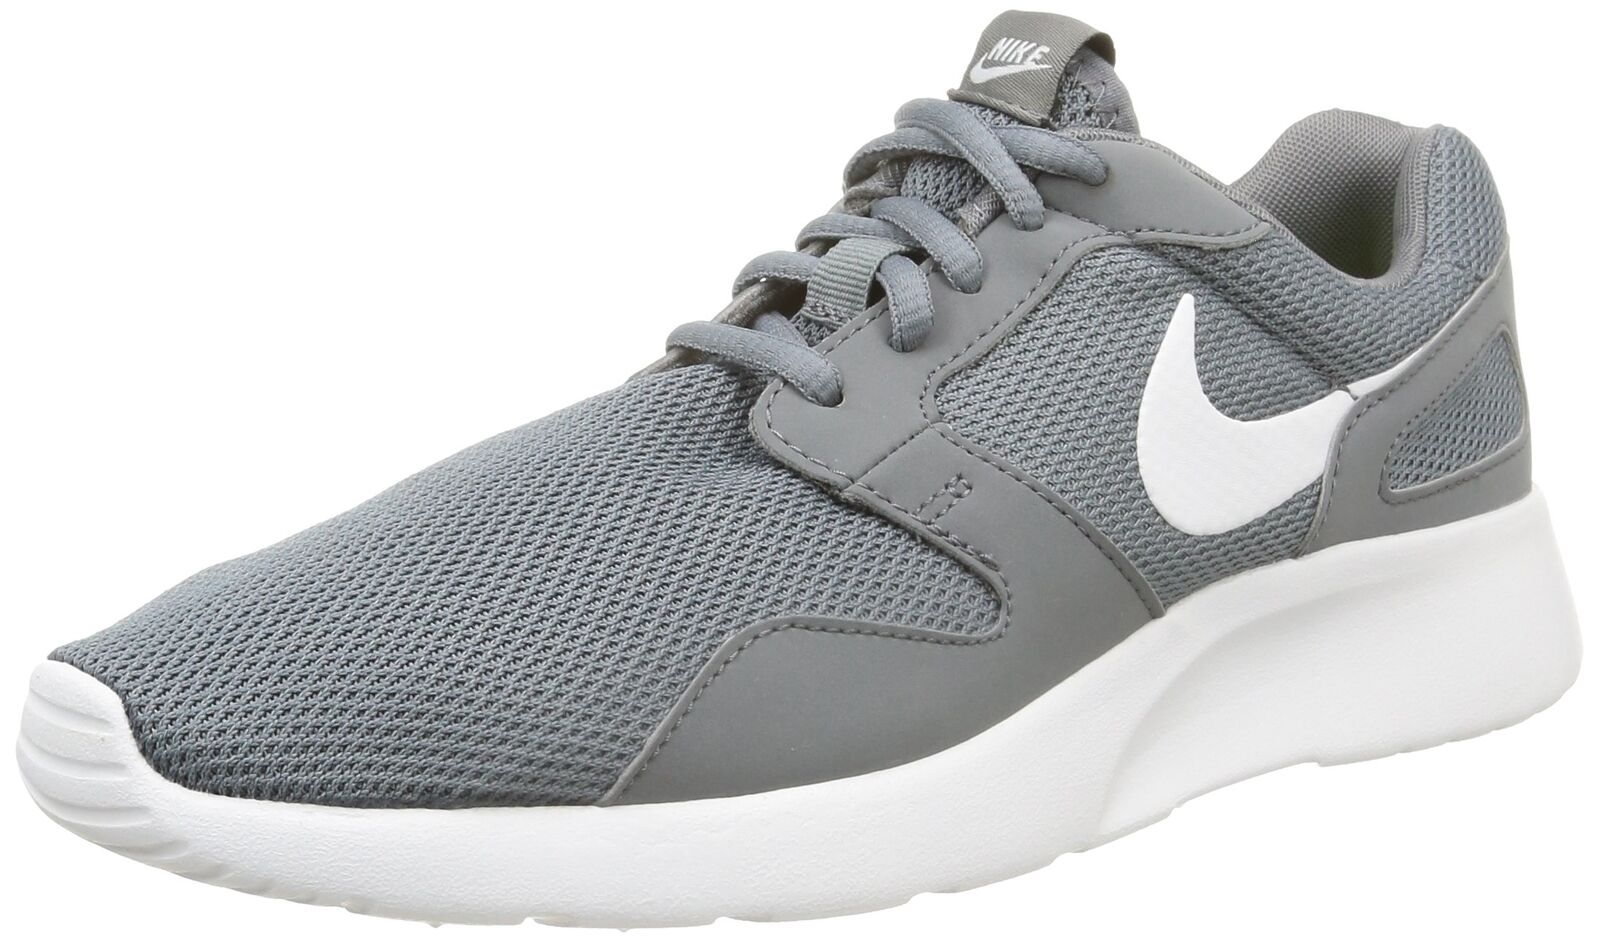 NIKE Mens Kaishi Running shoes Cool Grey White. 12 D(M) US